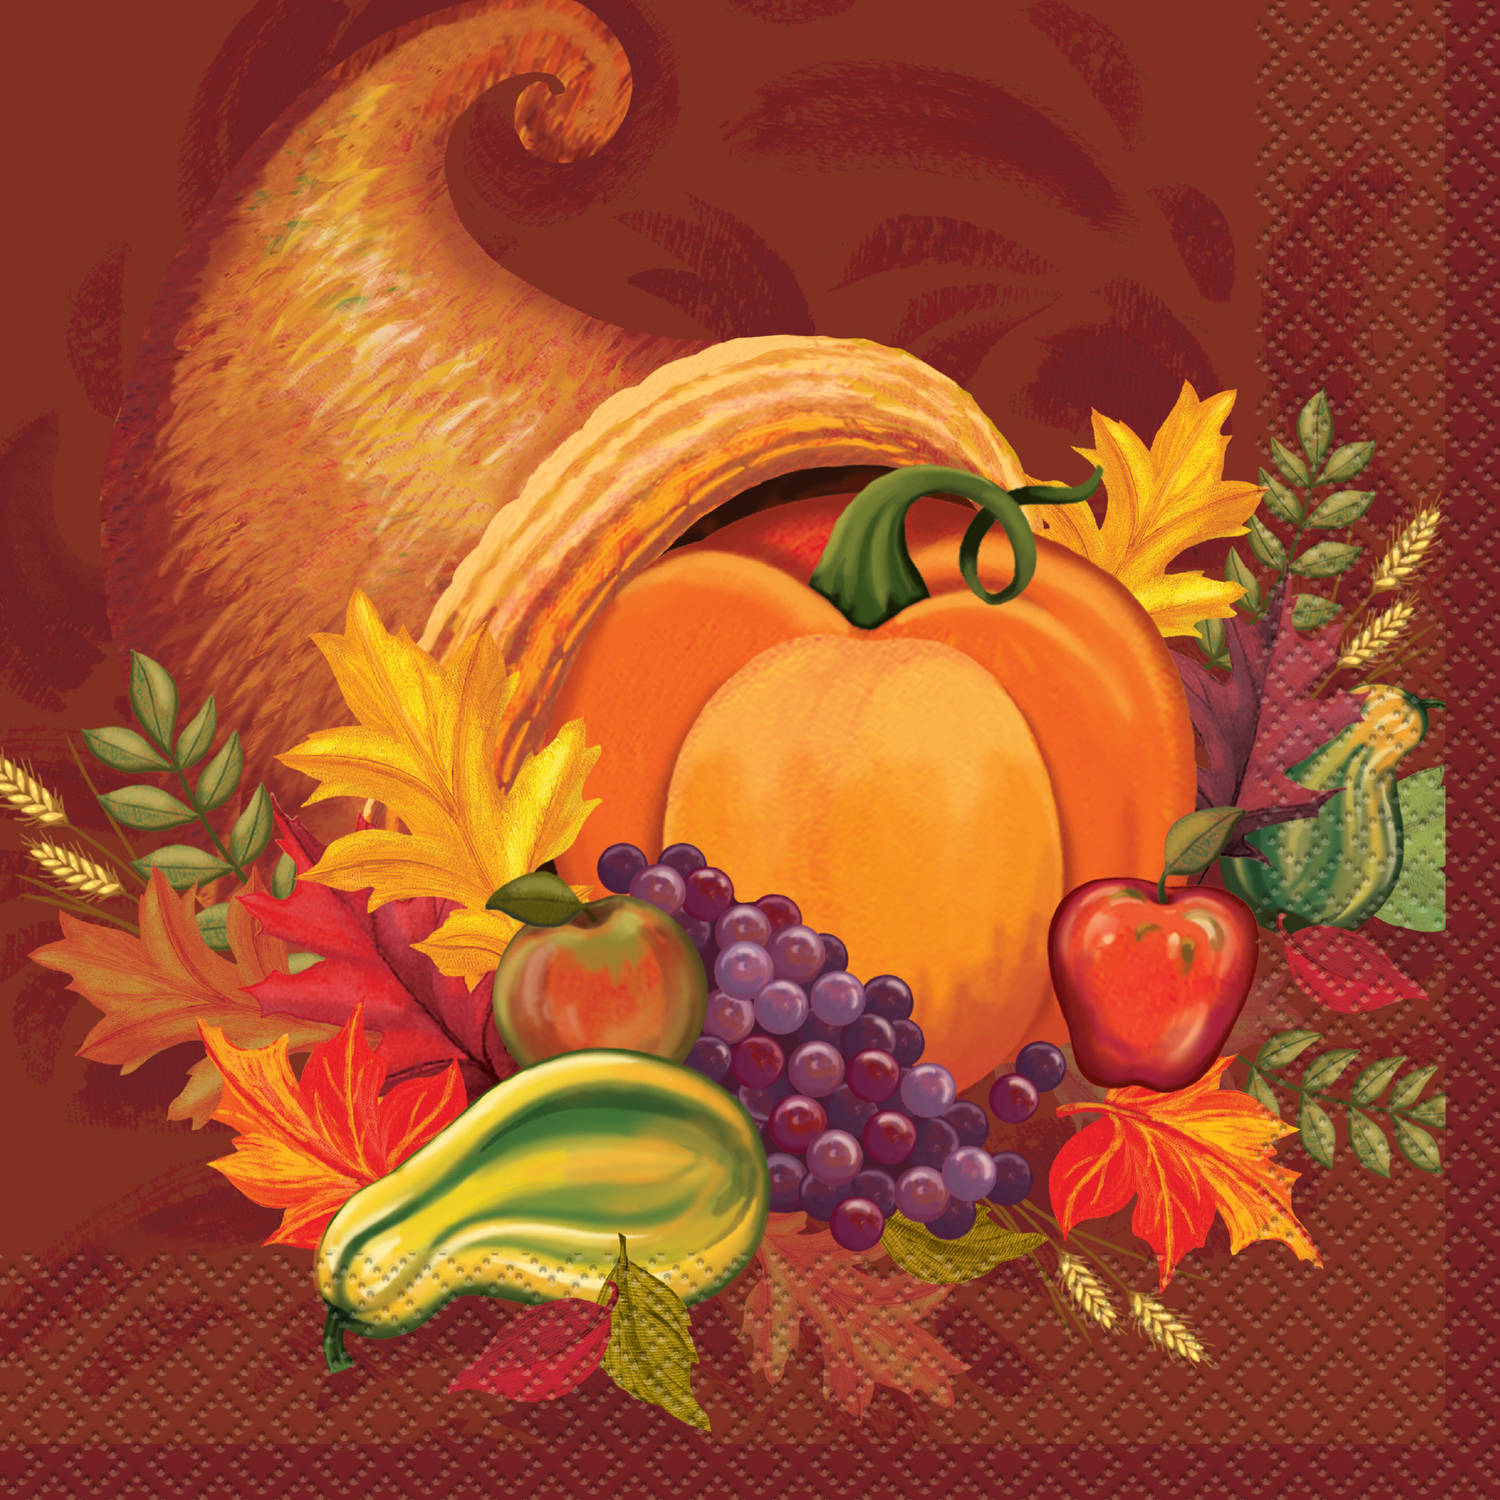 Harvest Fall Party Napkins, 16ct